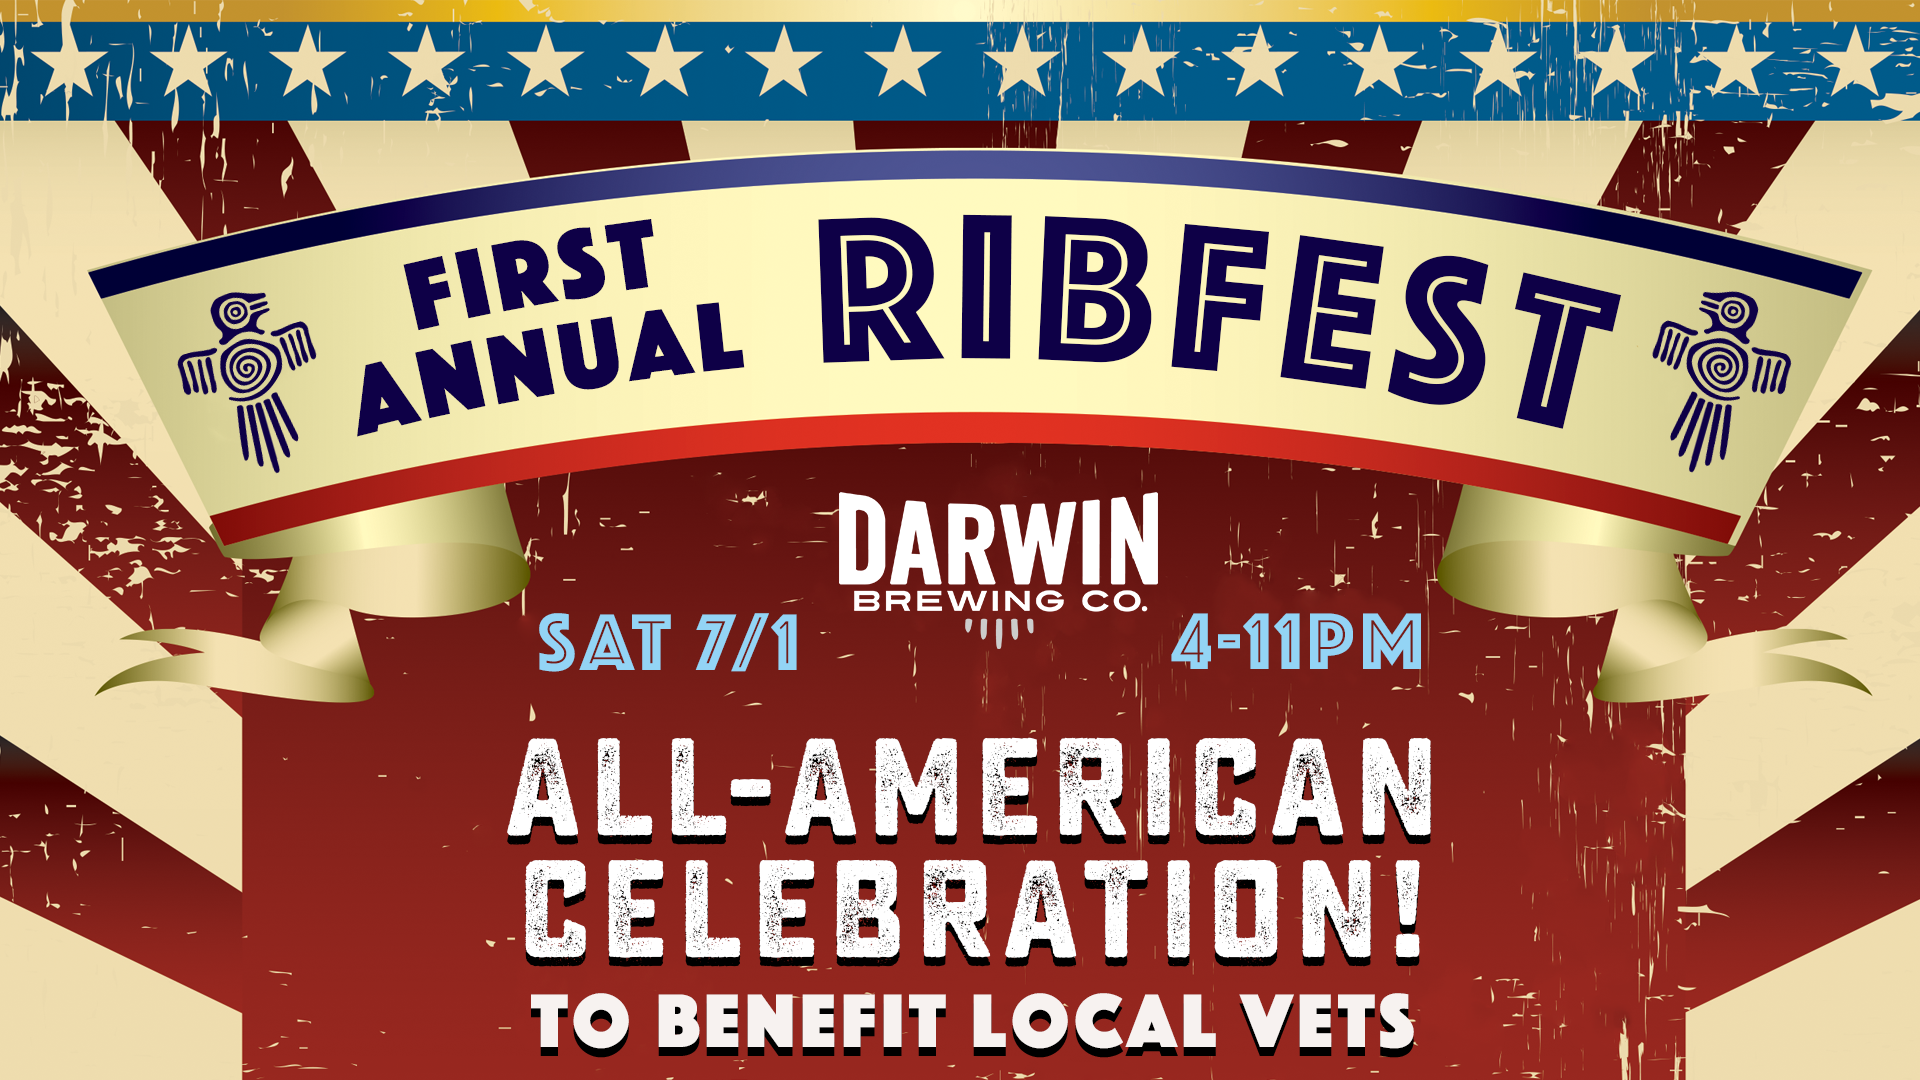 First Annual Ribfest